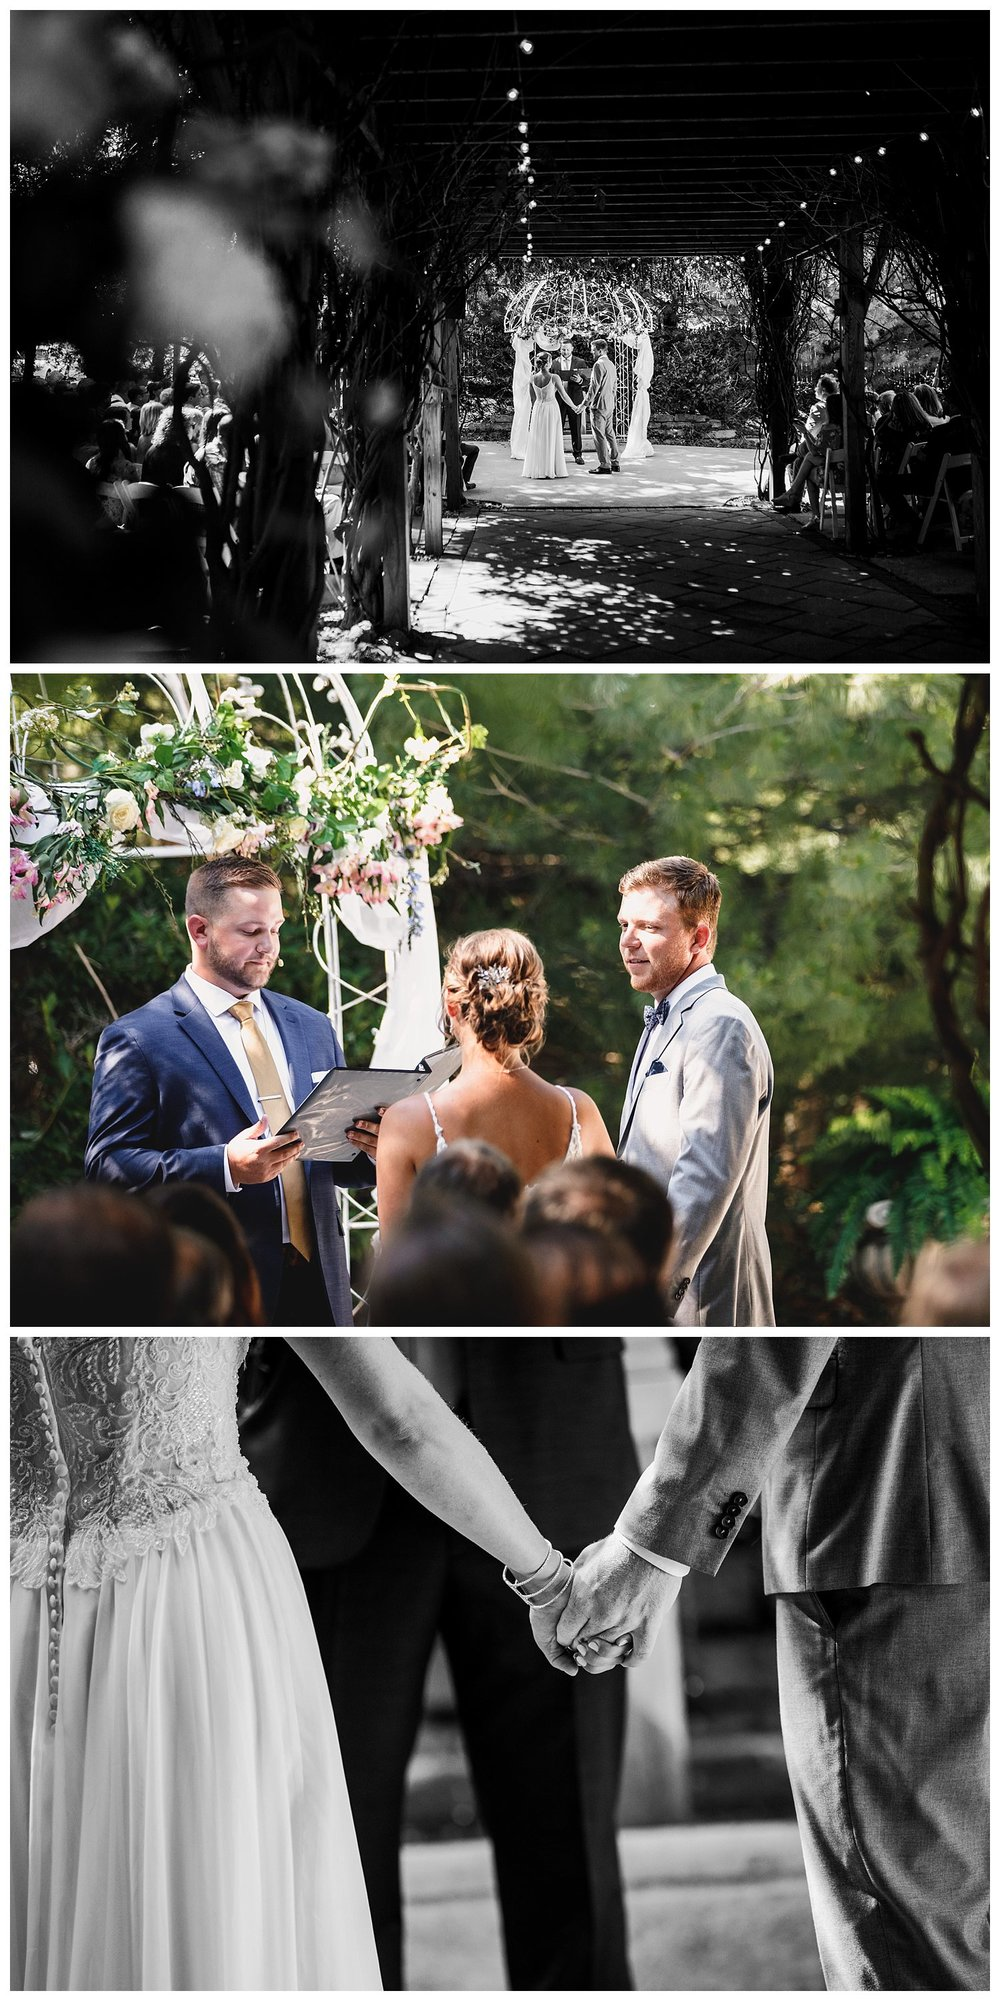 Kelsey_Diane_Photography_Kansas_City_Engagement_Wedding_Photographer_Midwest_Traveling_Missouri_Lee_Andrew_Hall_And_Garden_Blue_Springs_Wedding_Clayton_Kimberly_Summer_Wedding_0834.jpg